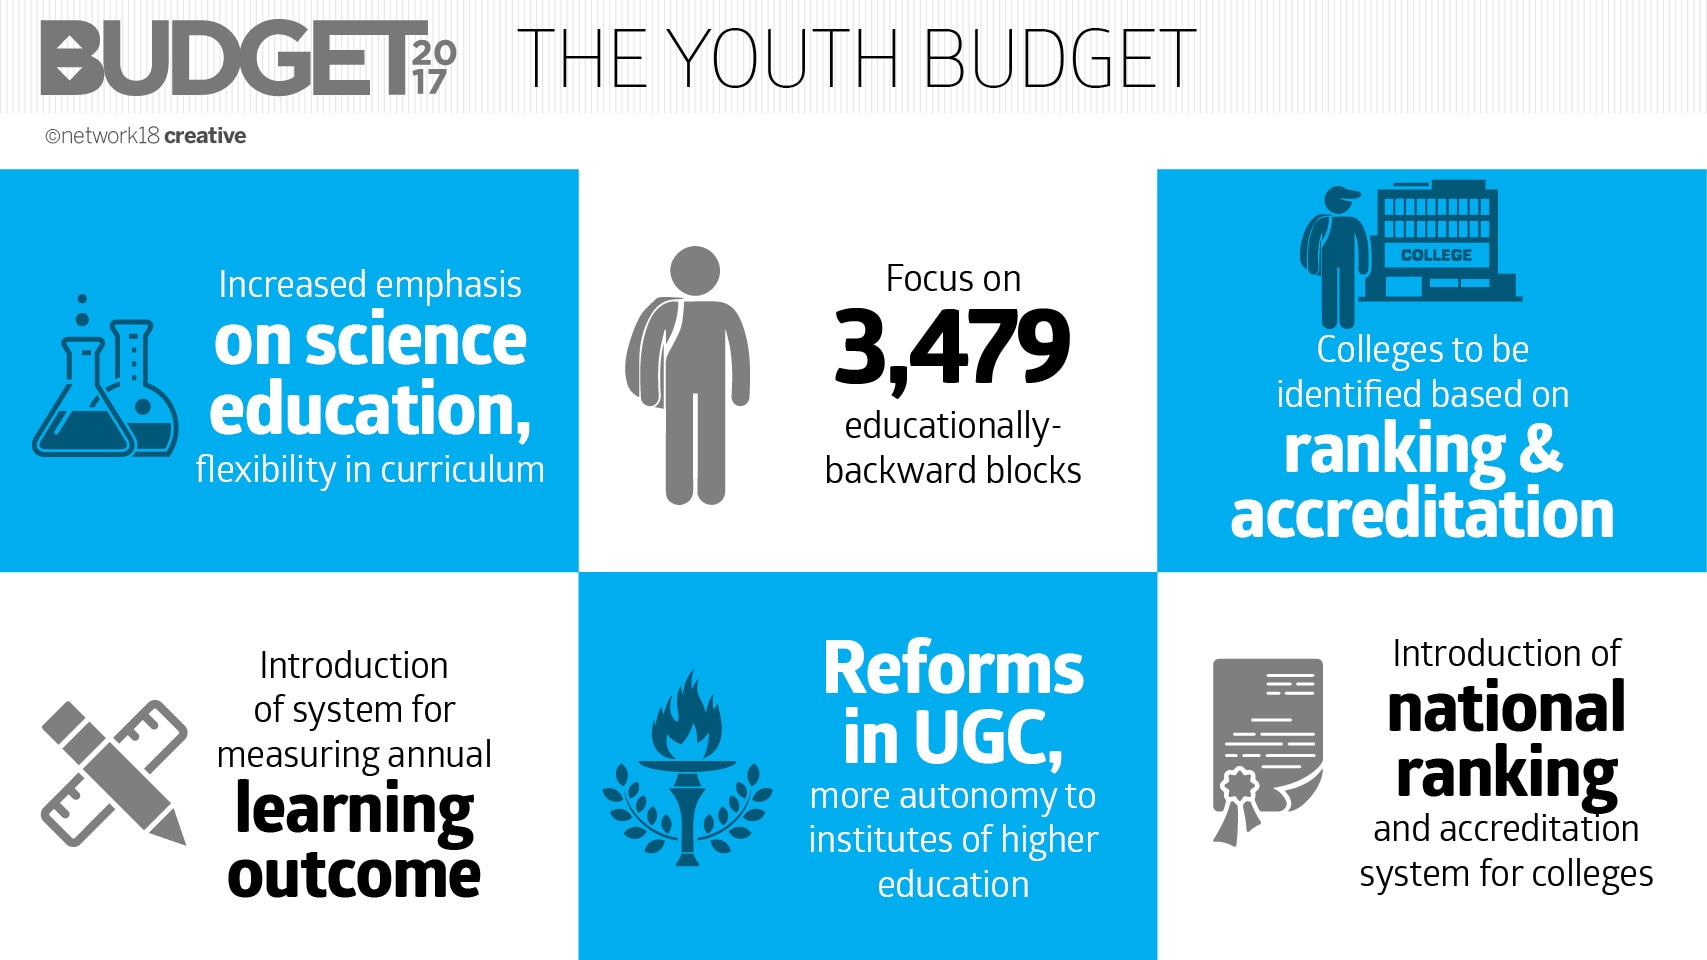 THE YOUTH BUDGET_A